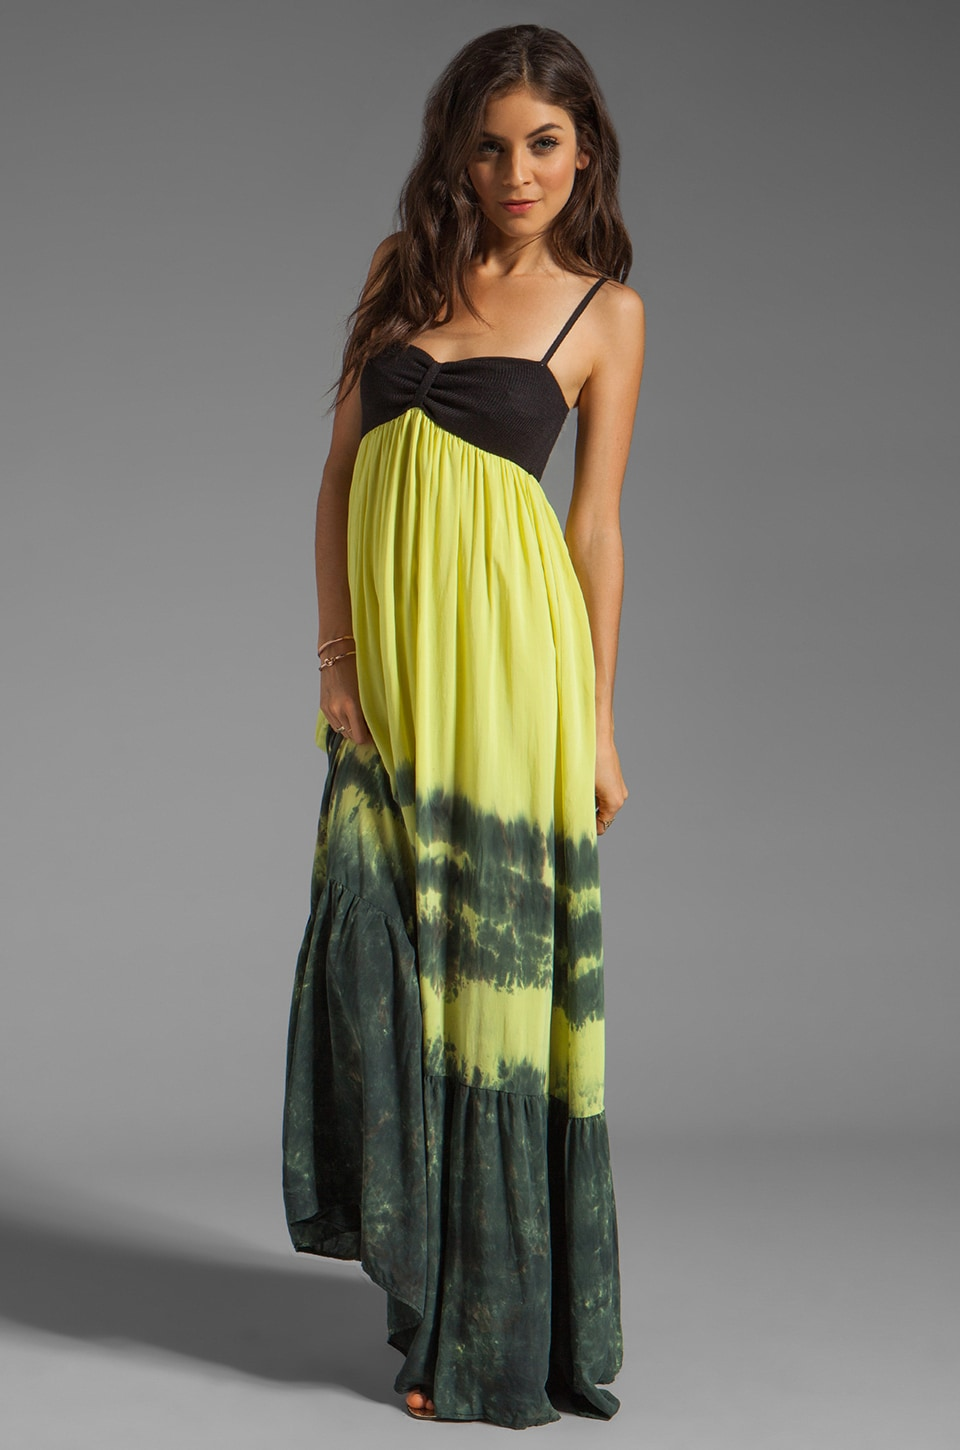 WOODLEIGH Iris Maxi in Lemon Wash